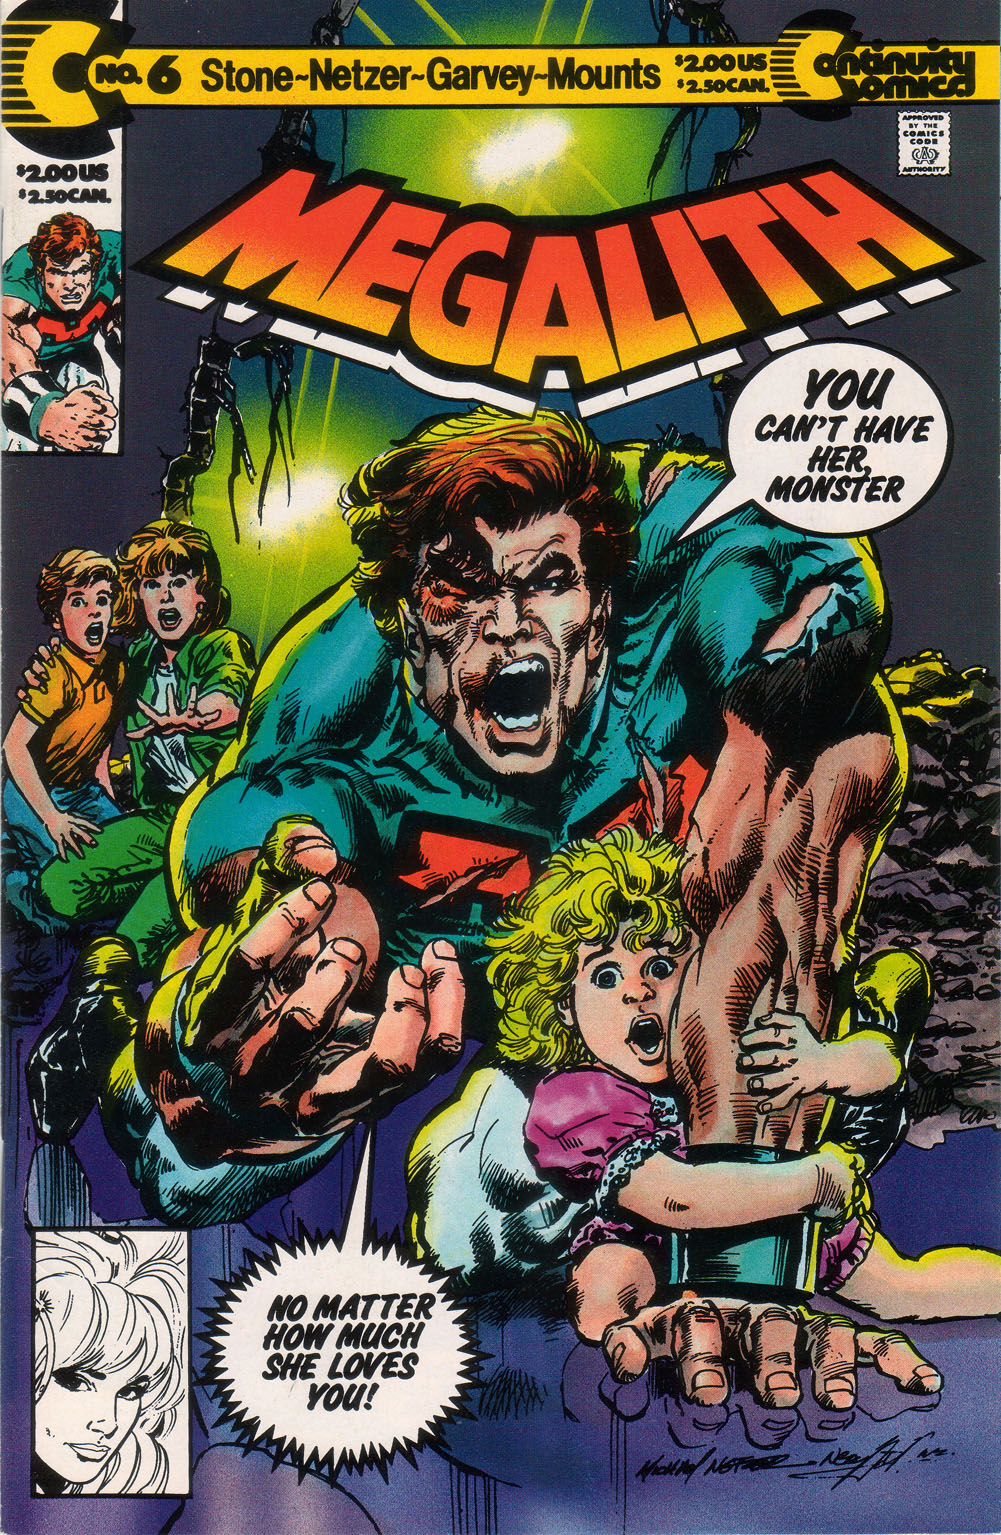 Megalith (1989) #6, cover penciled by Mike Nasser & inked by Neal Adams.